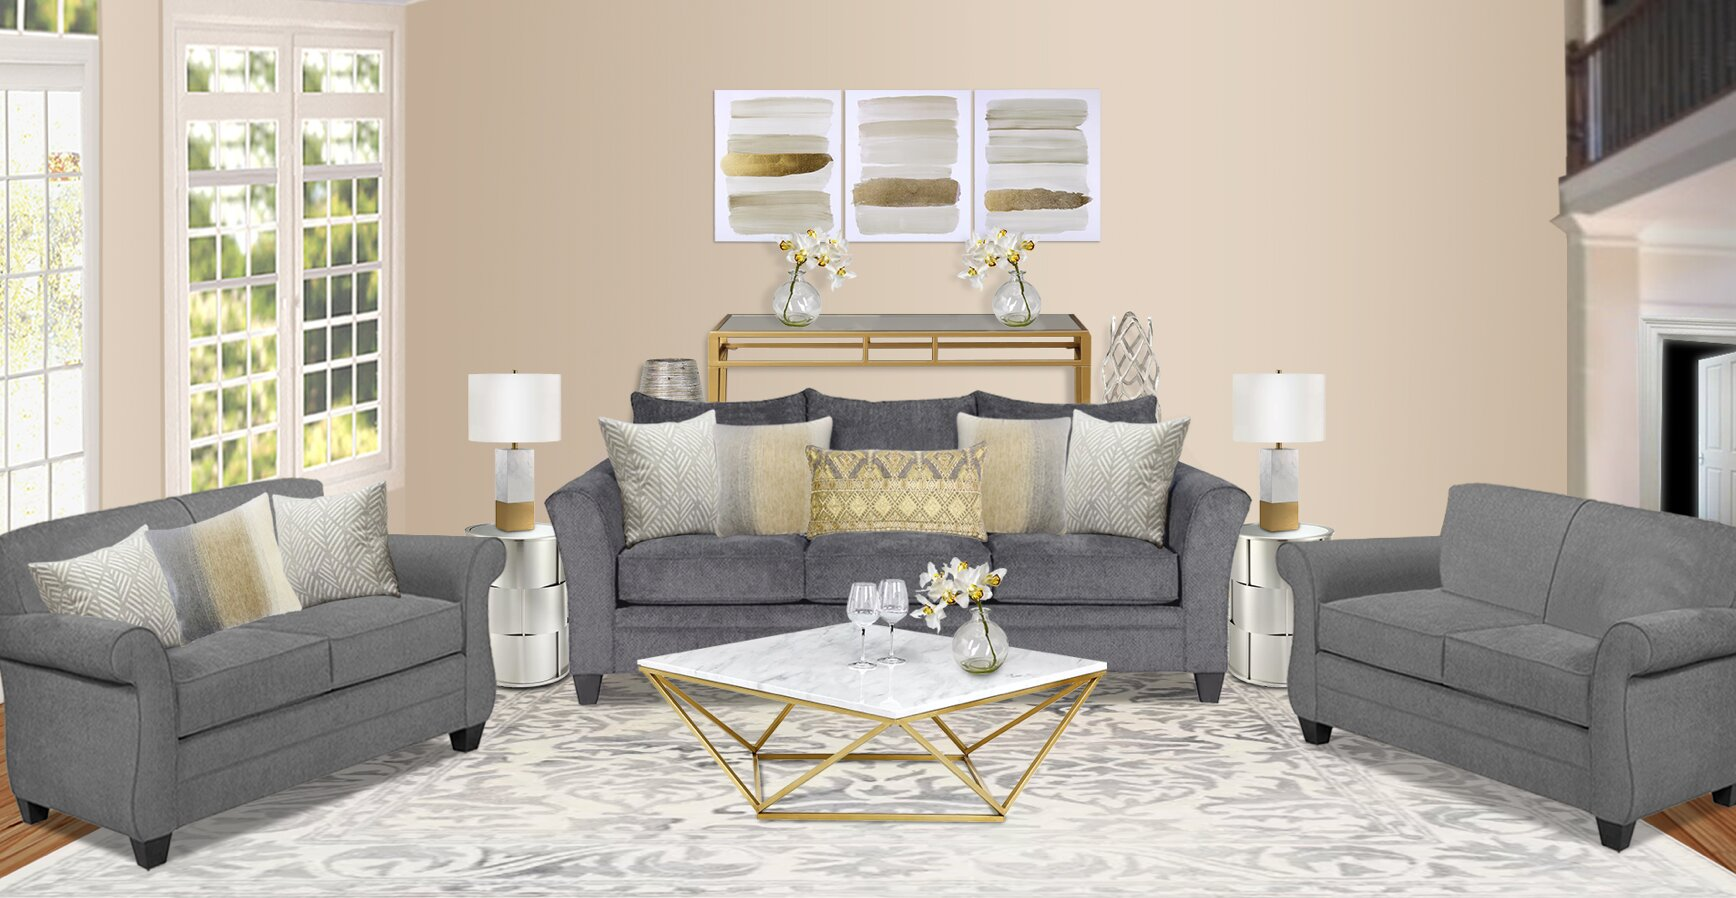 Wayfair Design Services